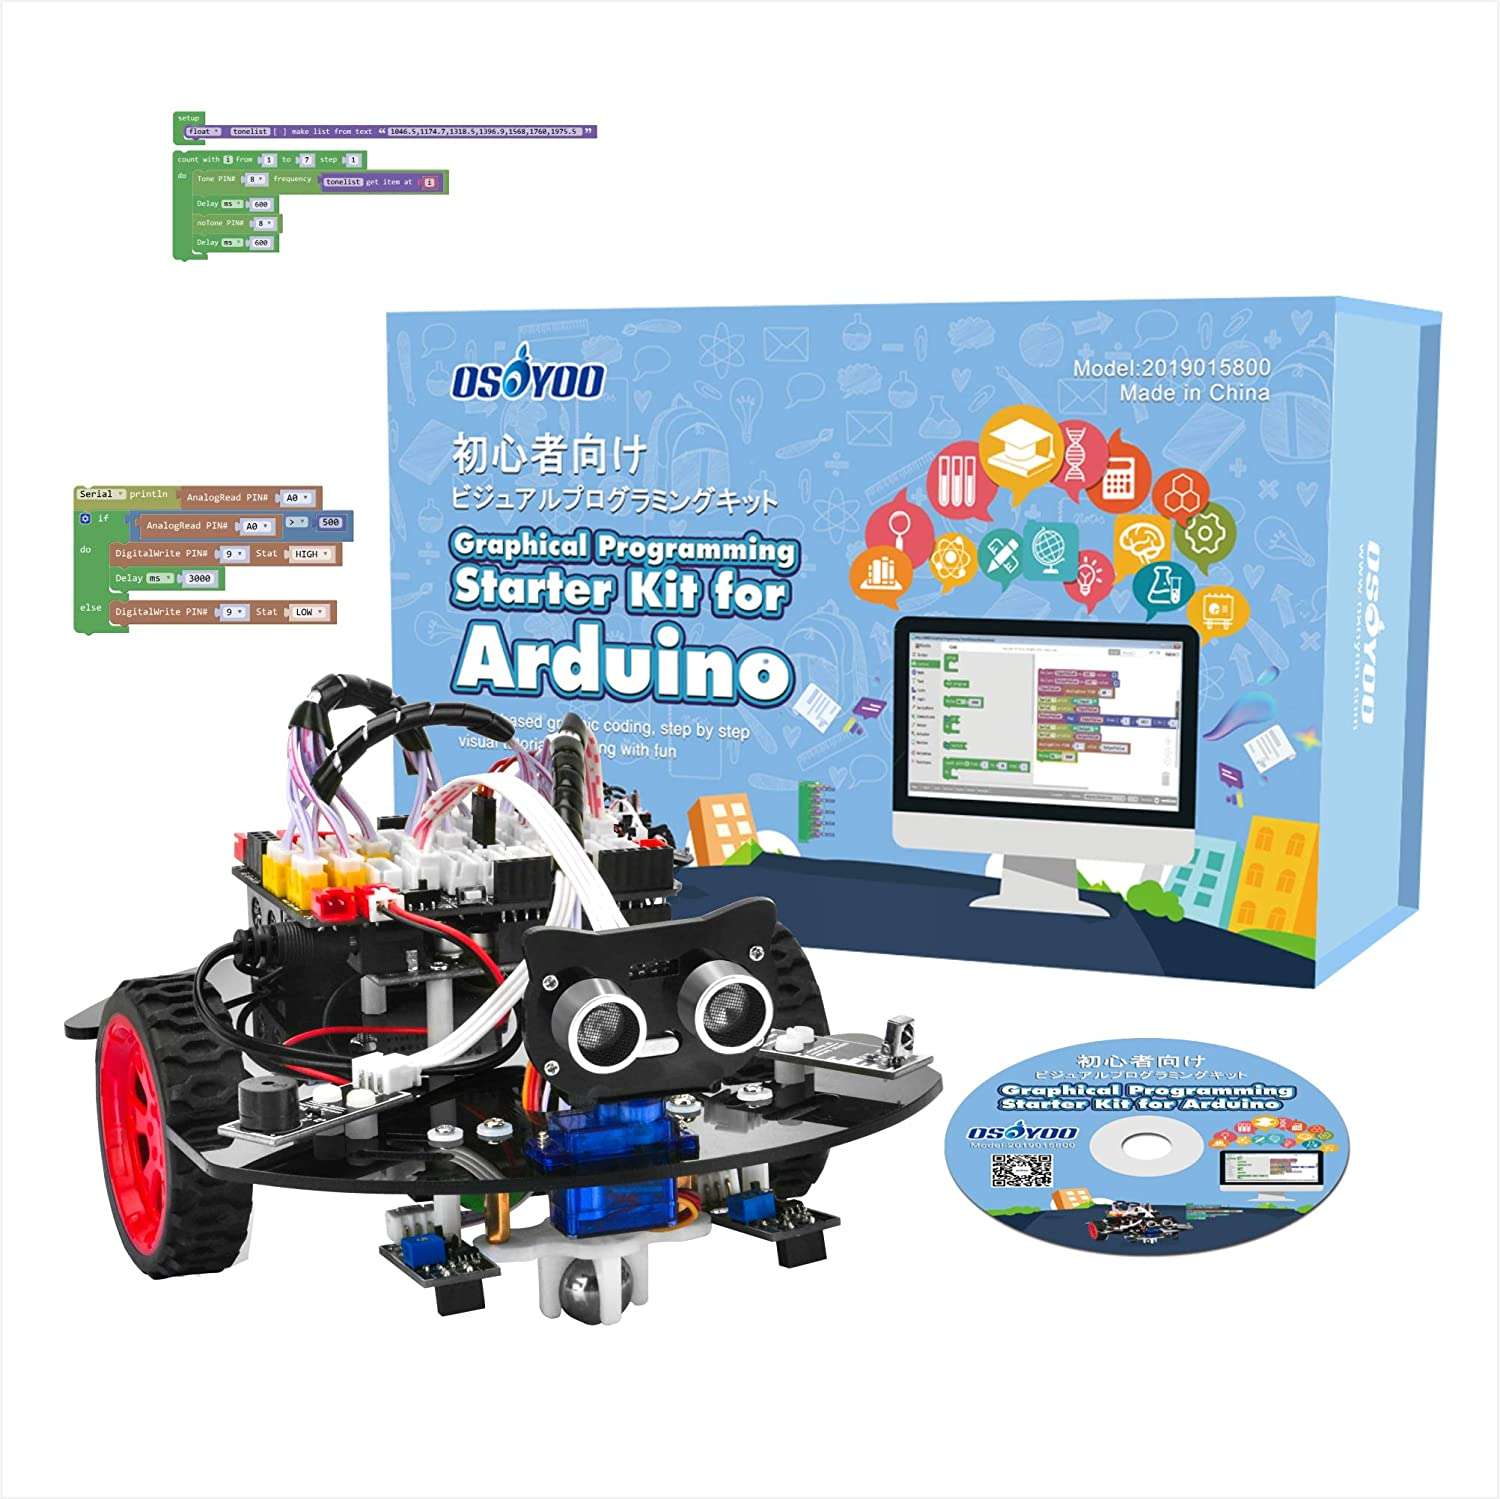 Ultrasonic Obstacle Web CSI Camera OSOYOO Robotic Car for Raspberry Pi 4 3B+ 3B Teens and Adults STEM Educational DIY Smart Kit for Science Fair WiFi IOT Control RPi Board Not Included